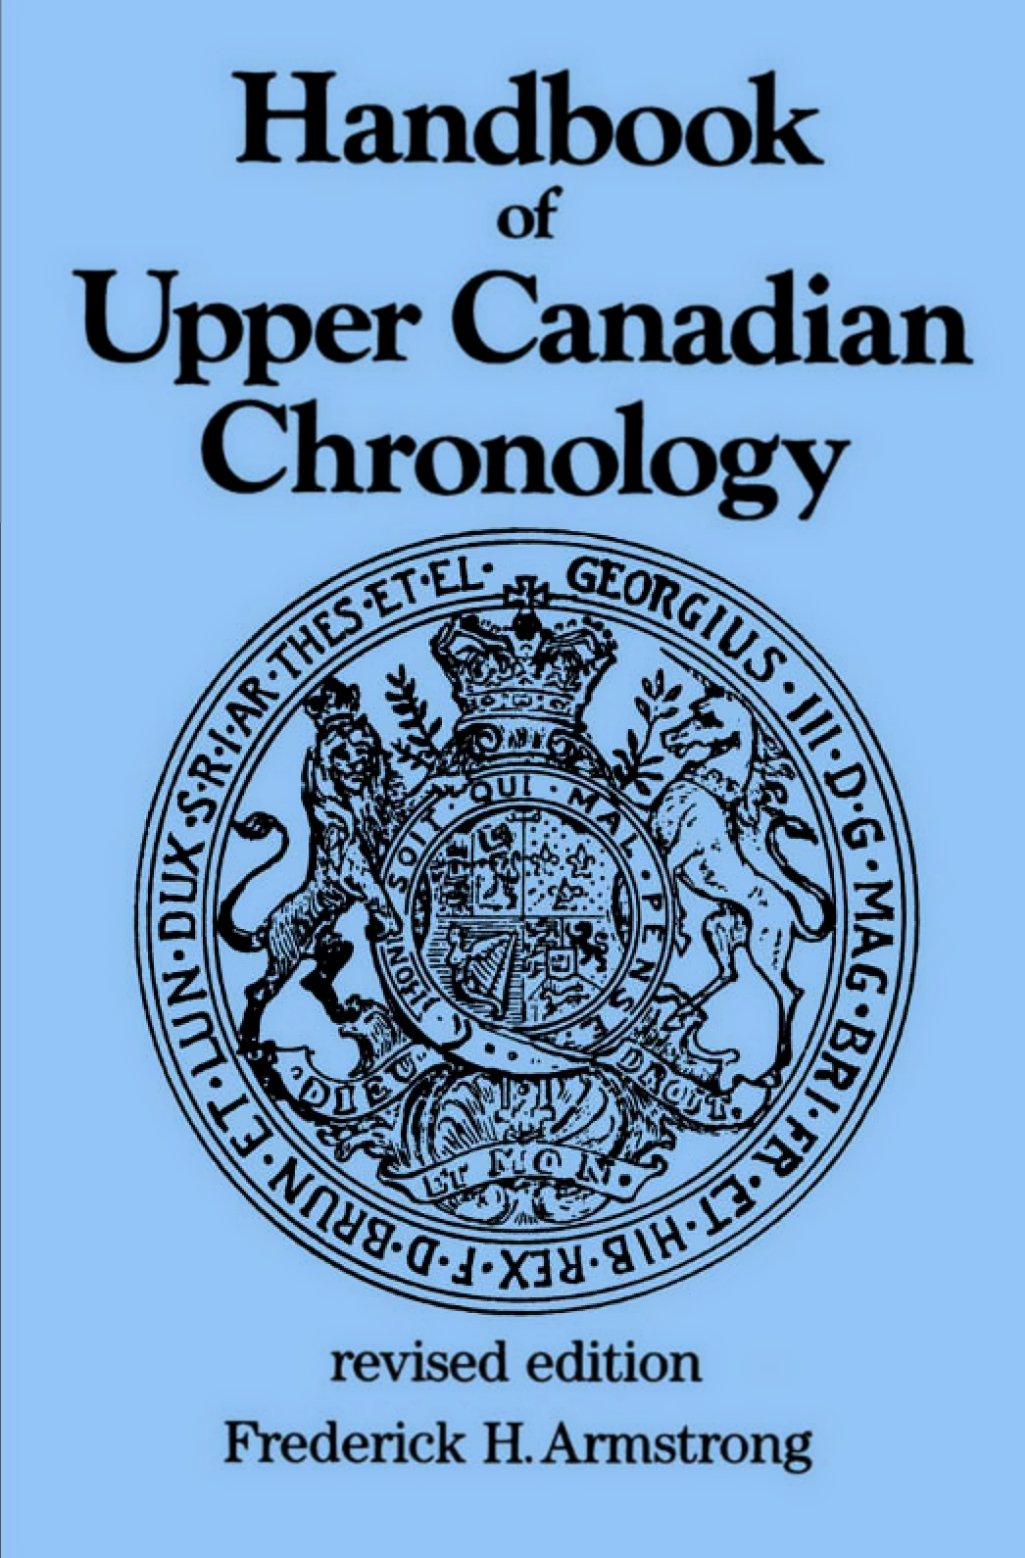 Handbook of Upper Canadian Chronology: Revised Edition (Dundurn Canadian Historical Document)